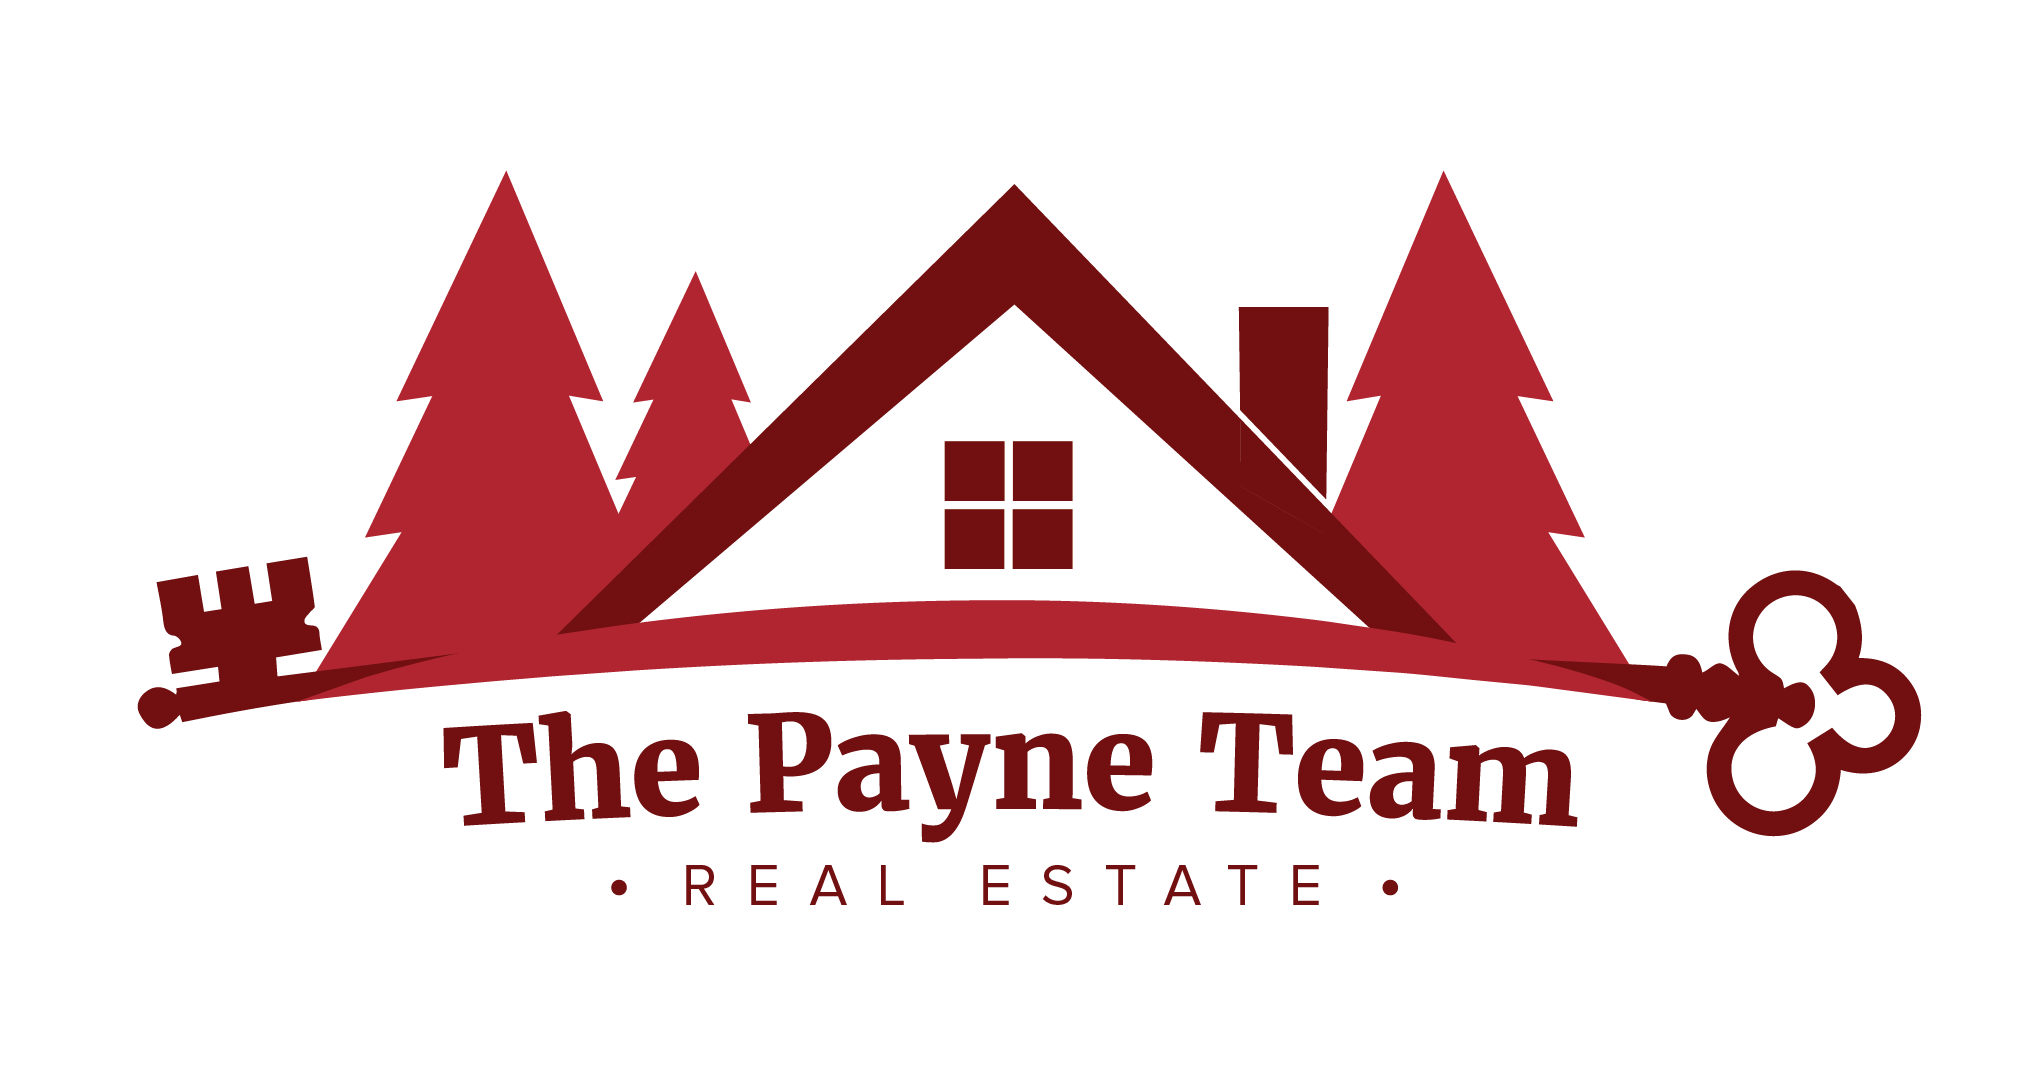 The Payne team - Bill and Dawn Payne are realtors based in Sullivan County, NY. Dealing with many listings in rural parts of the county, they wanted their logo to reflect on the beautiful properties they sell to clients, which are often deep in the woods.